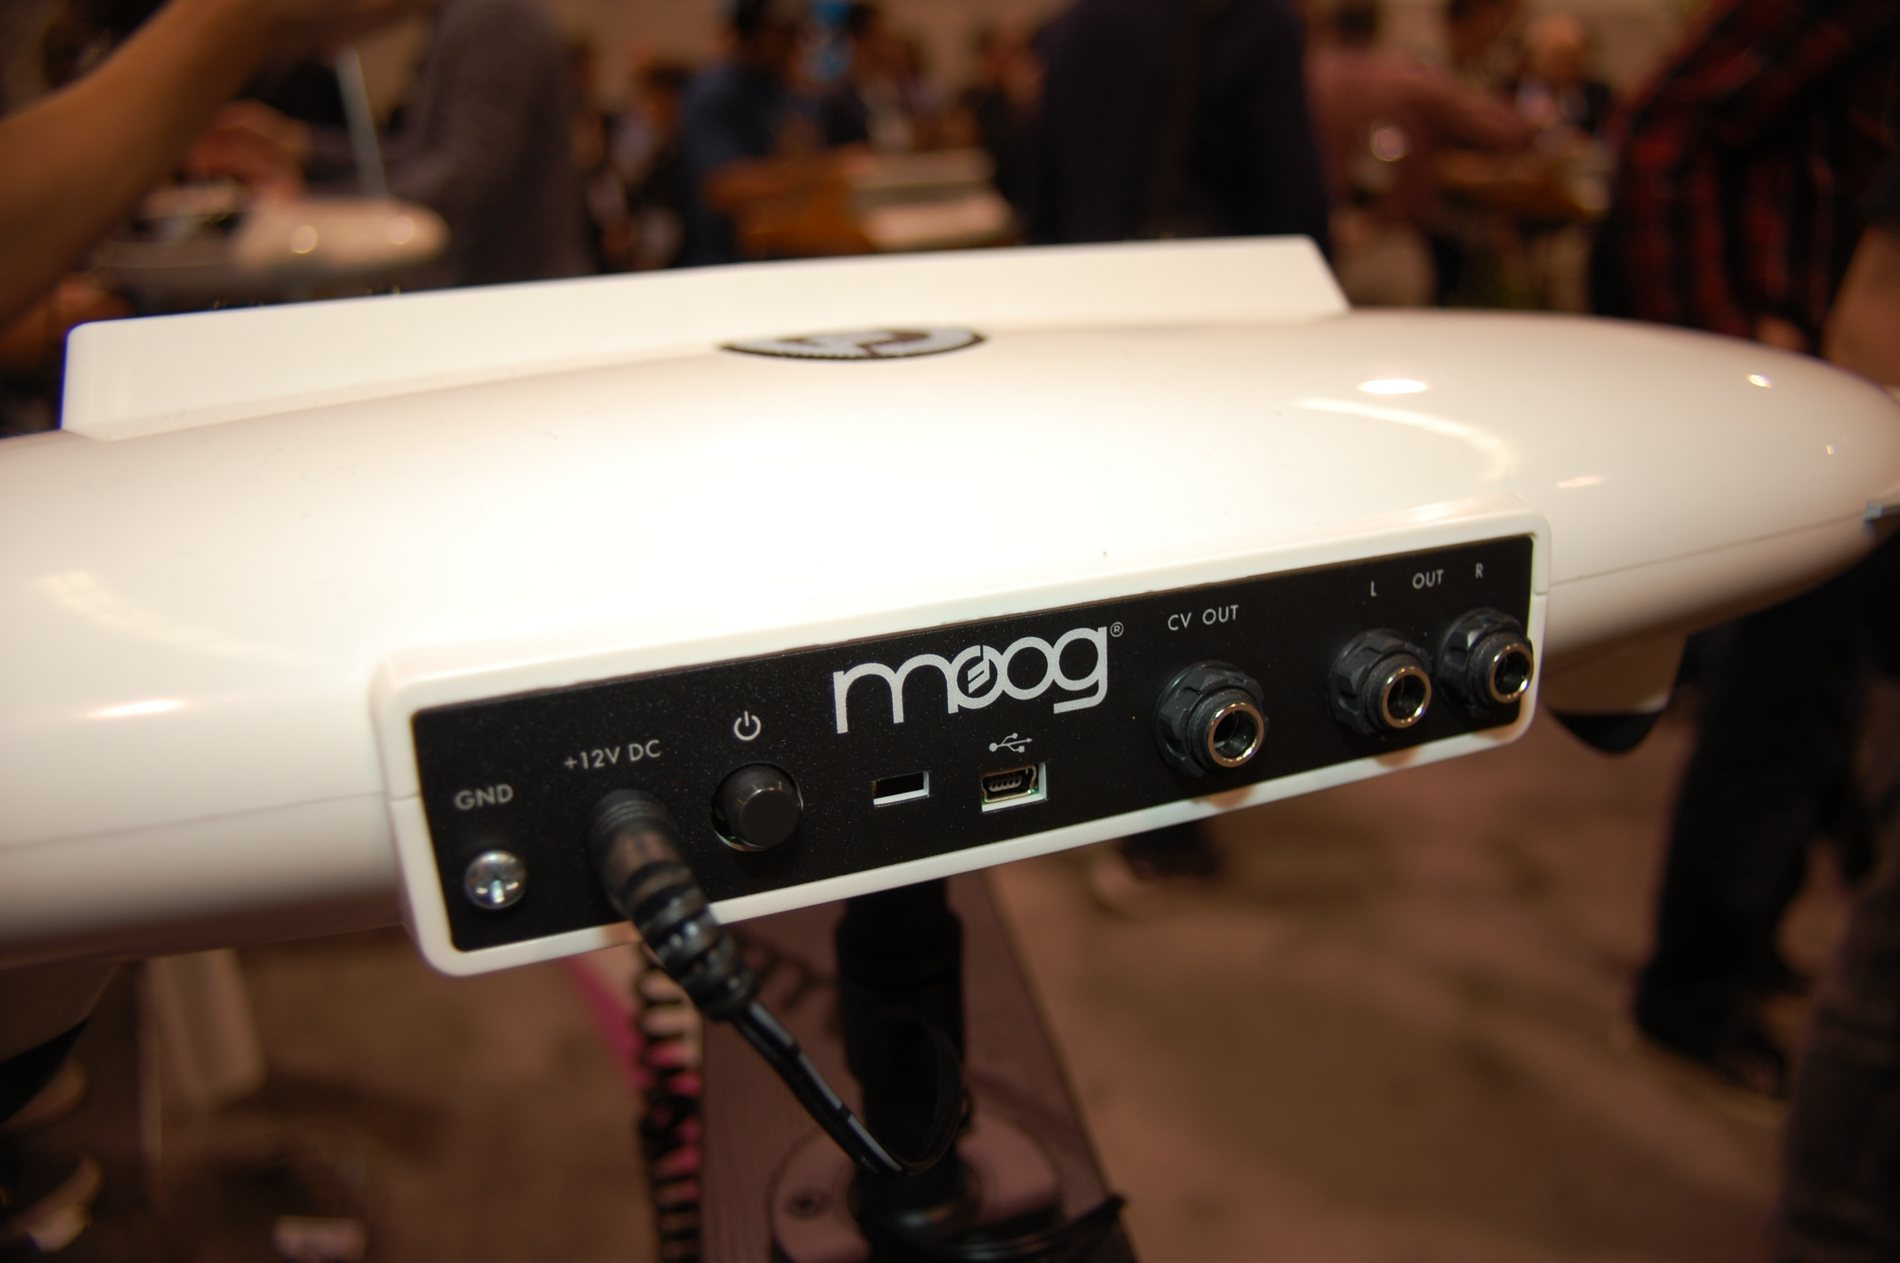 Moog Theremini Age of Audio - Theremini! L'etere alla riscossa!